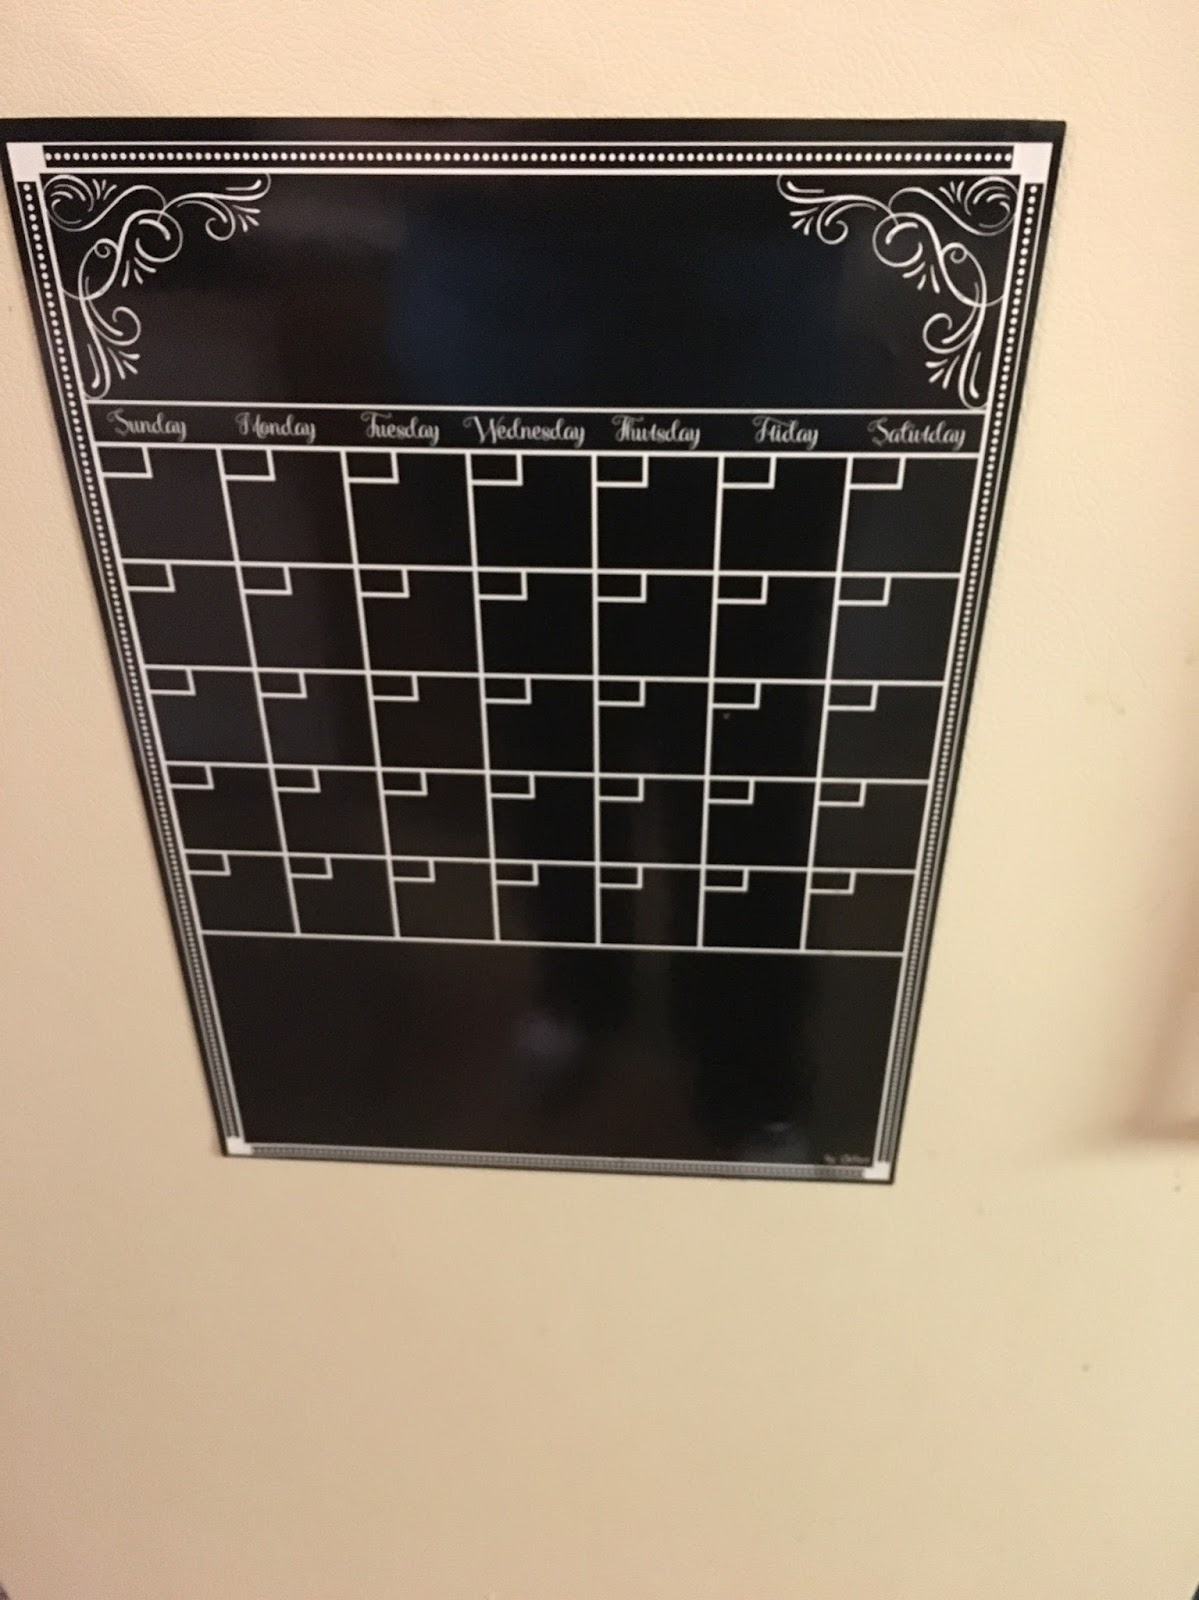 Magnetic Monthly Calendar For Refrigerator : Monthly magnetic backed blackboard calendars for home and office